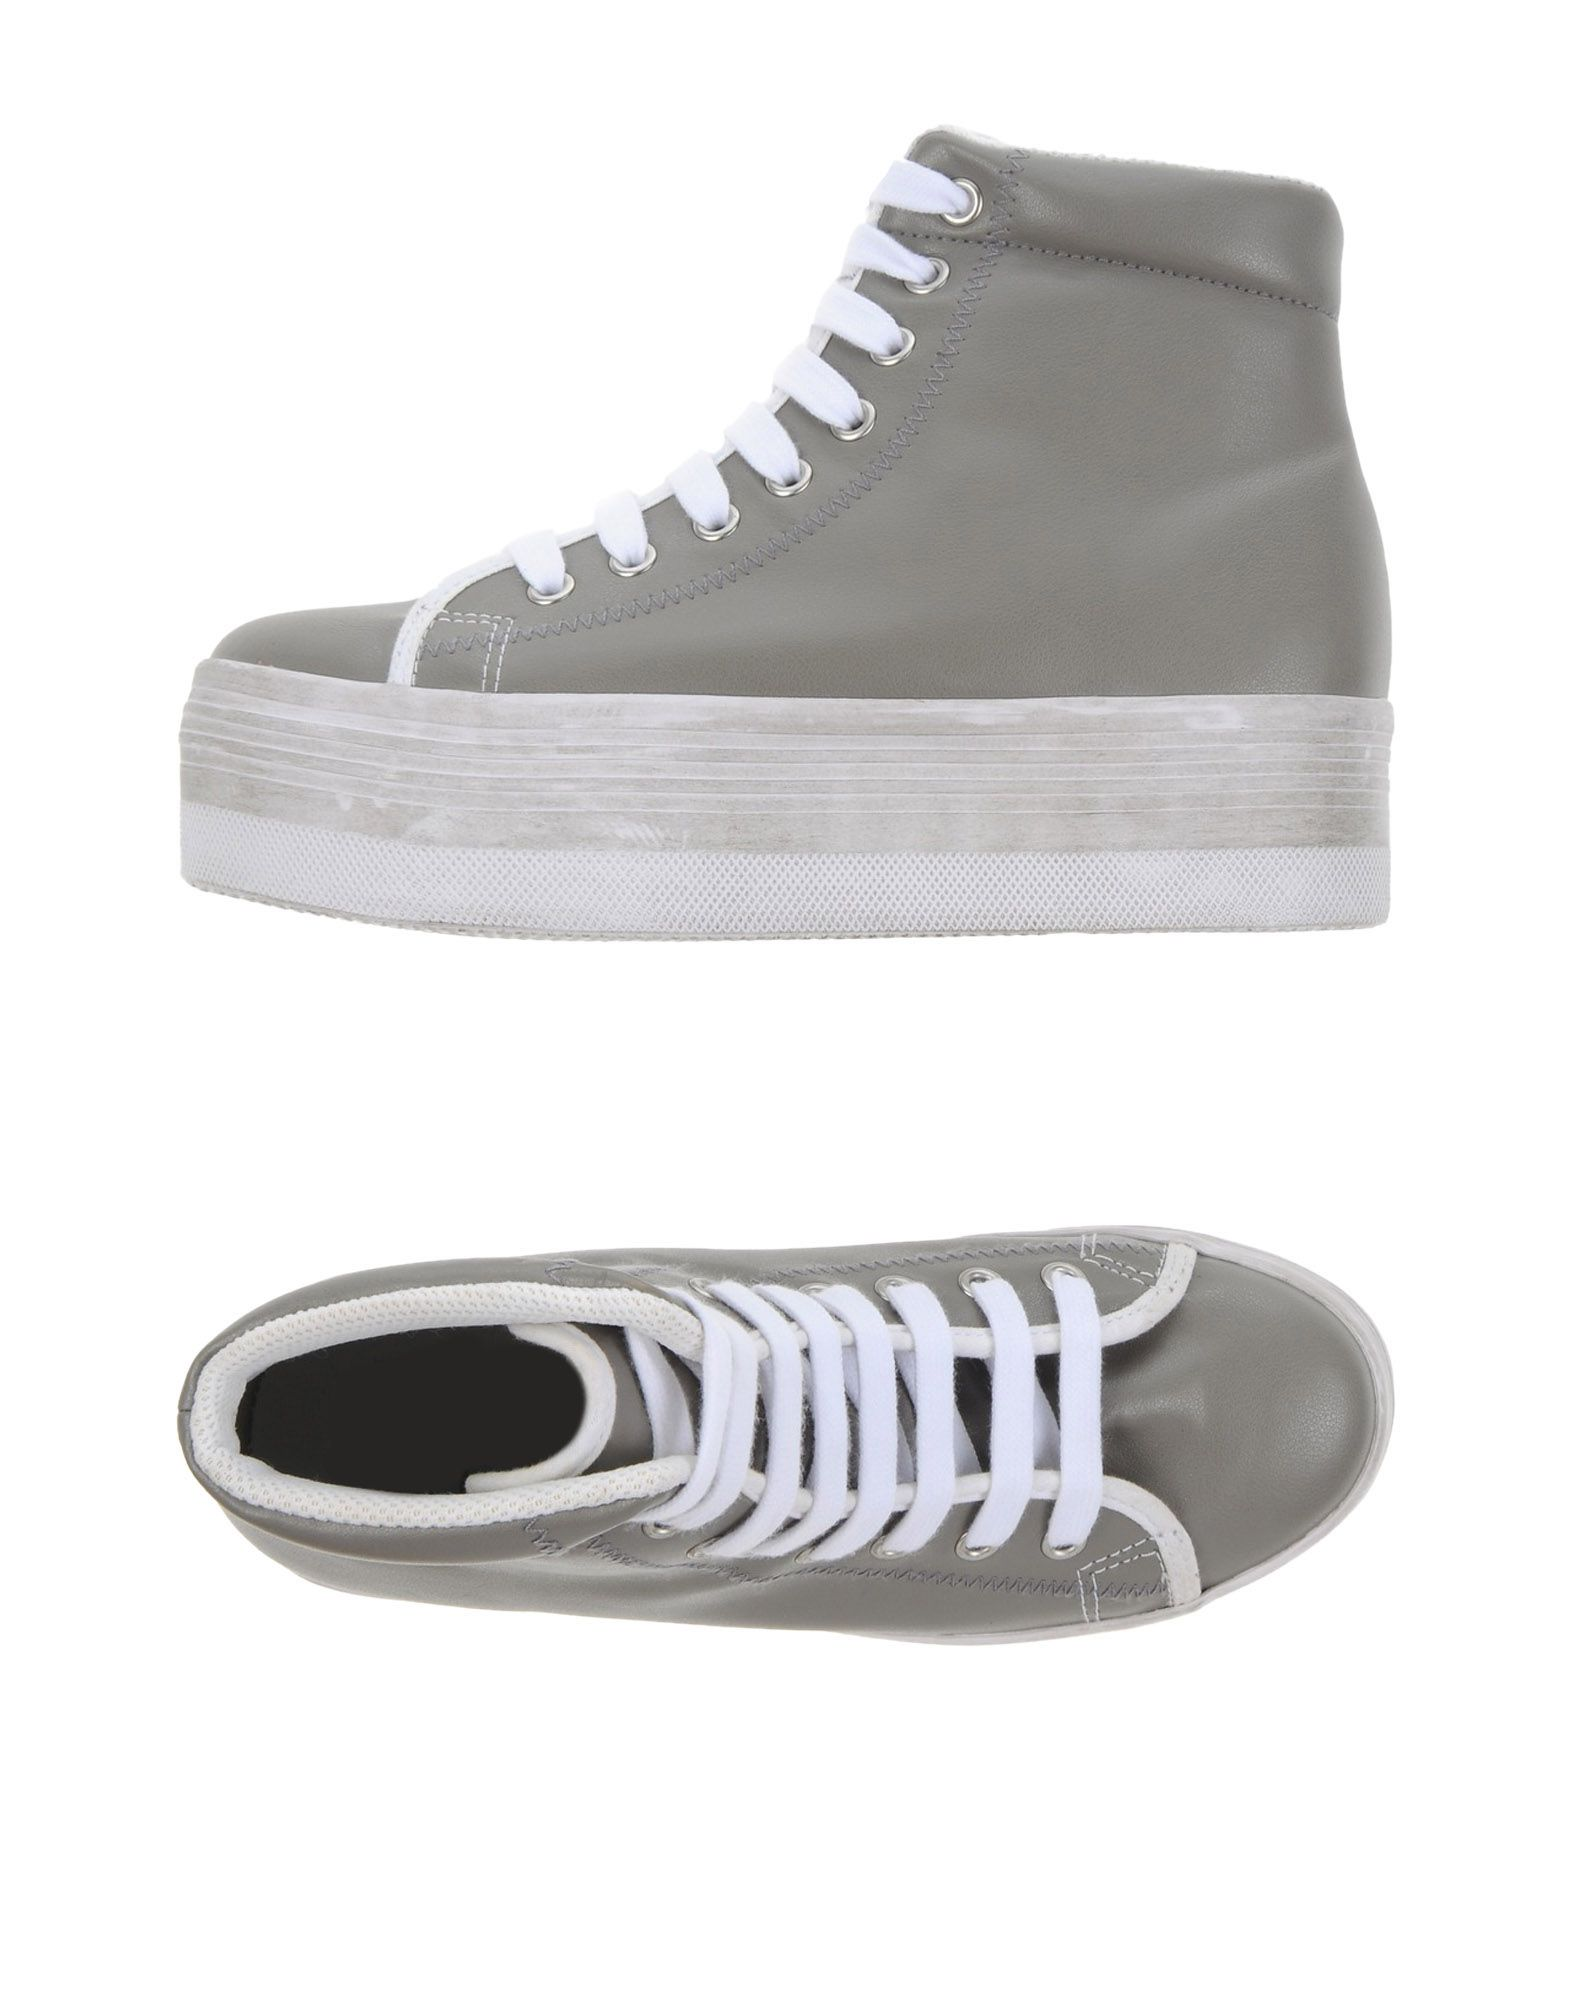 JC PLAY BY JEFFREY CAMPBELL Sneakers in Grey